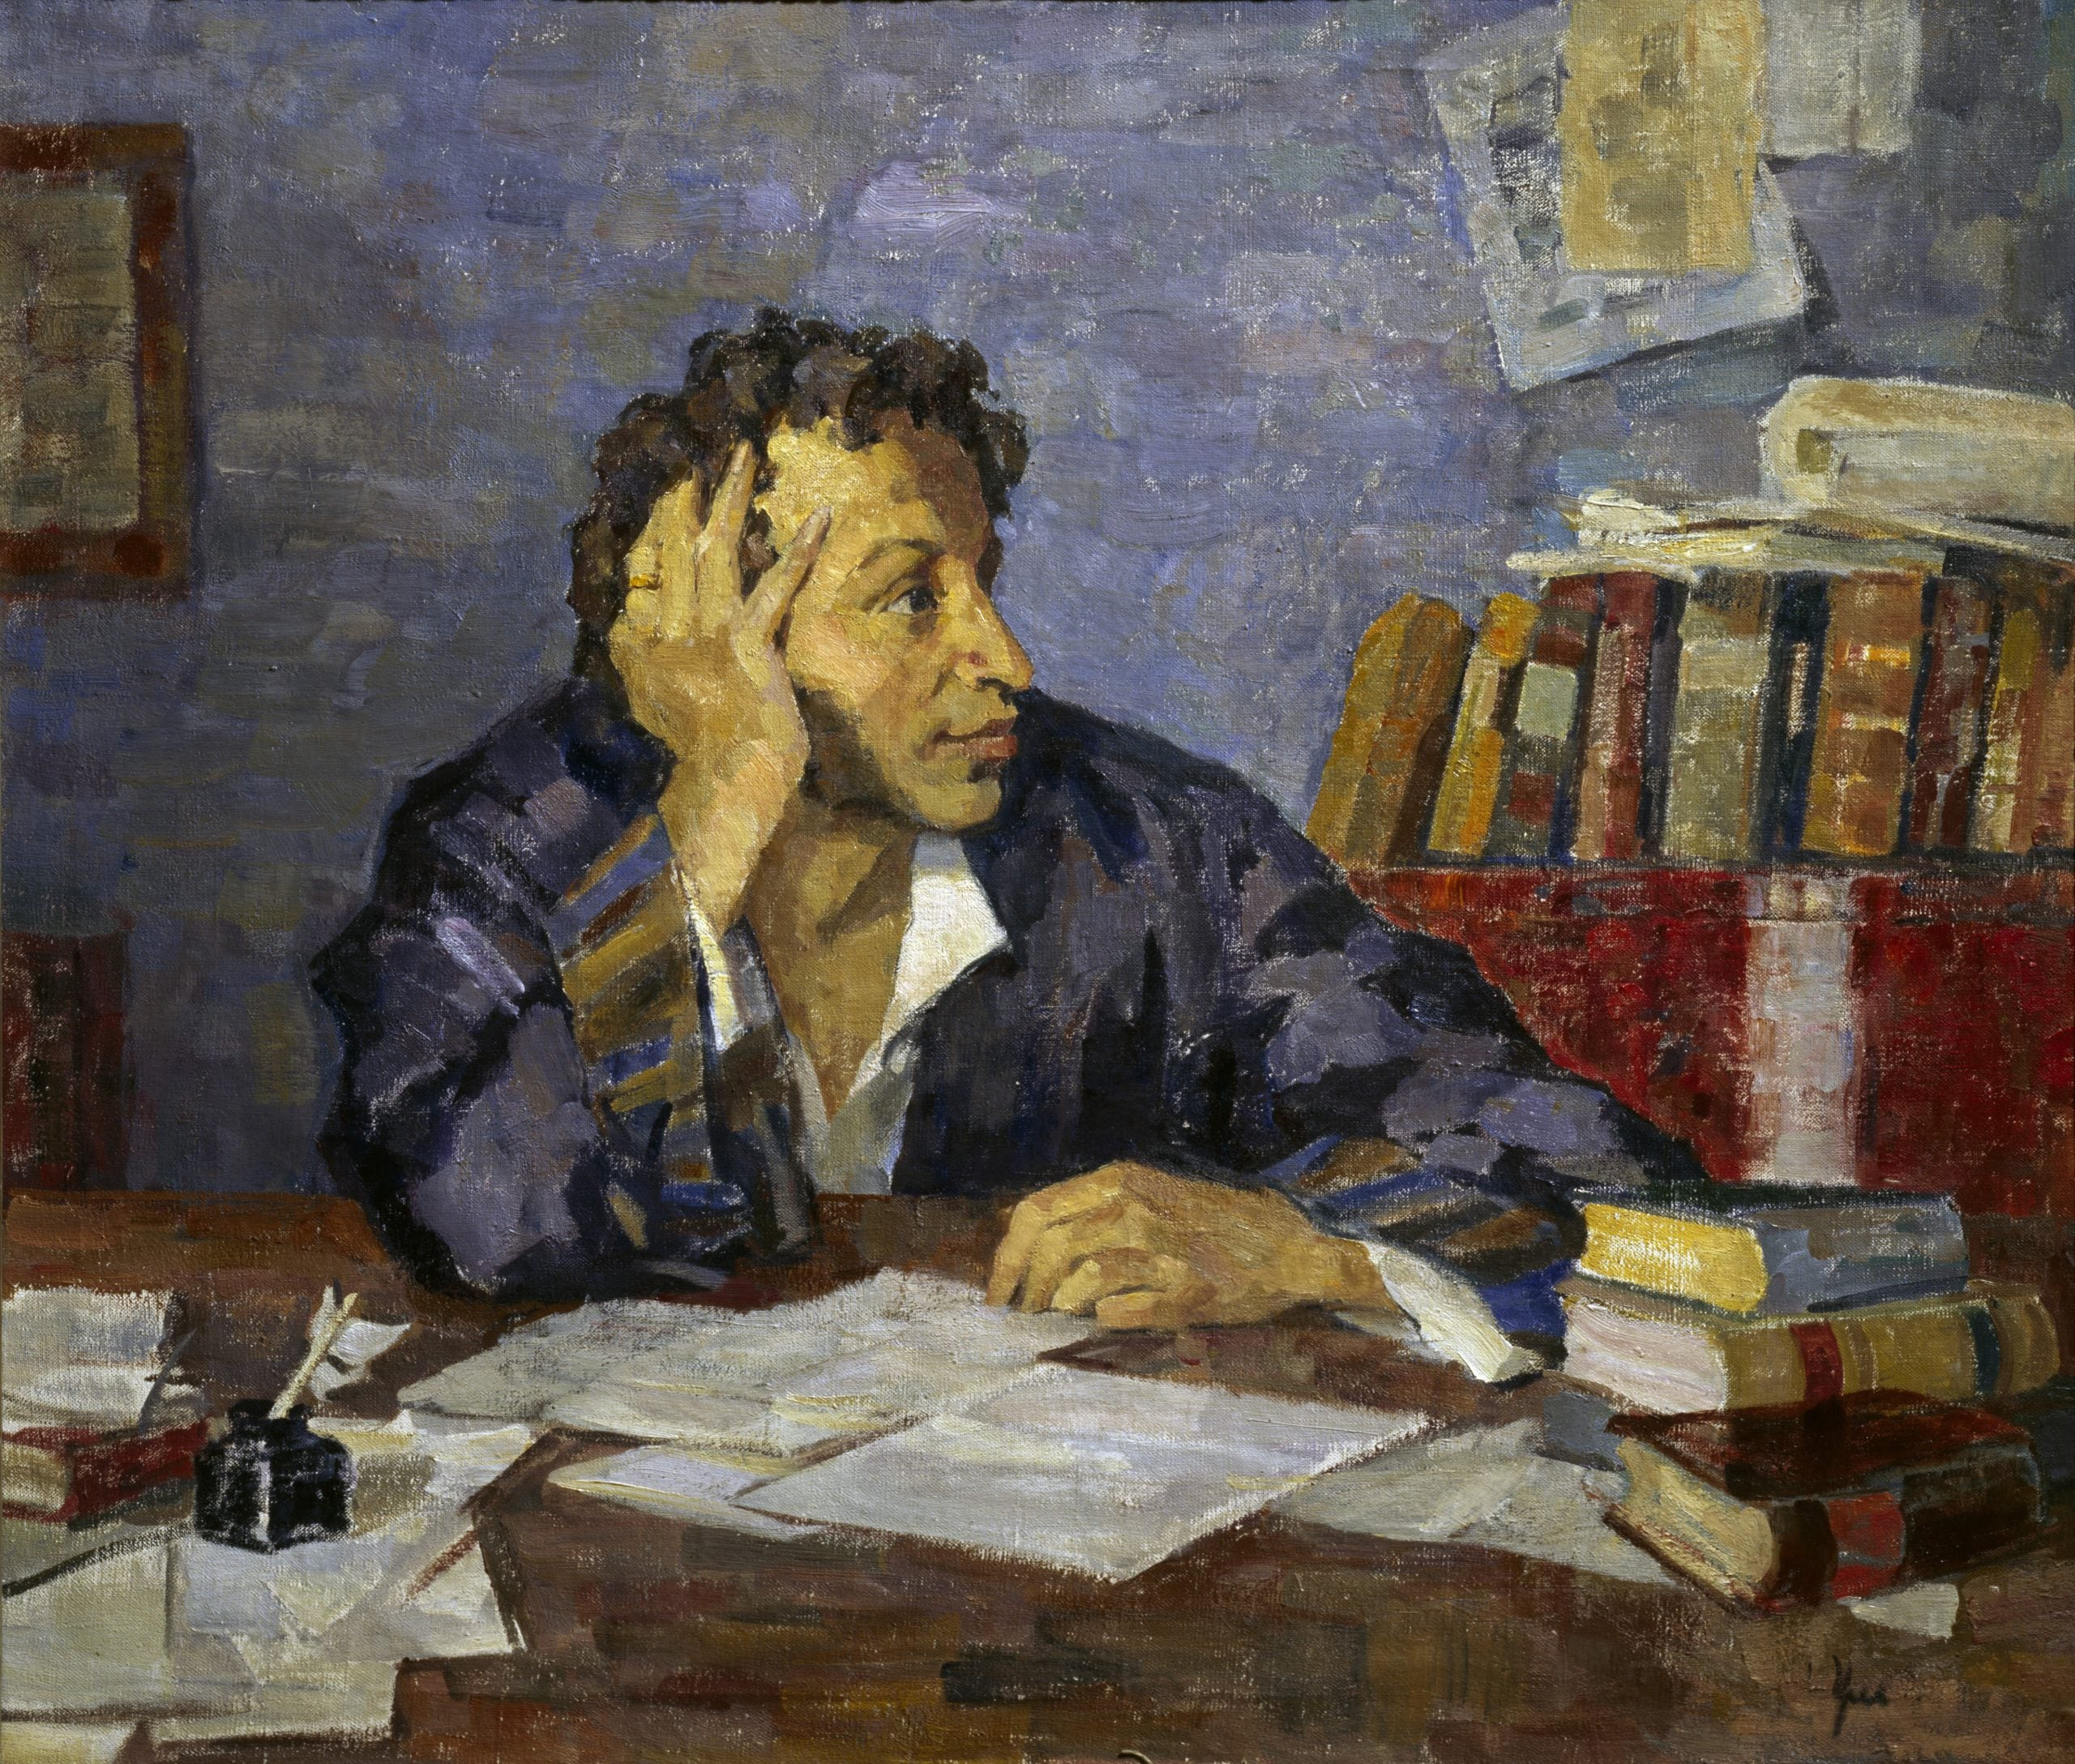 Russian soul reawakened: startling revelations in a new anthology of Russian poetry